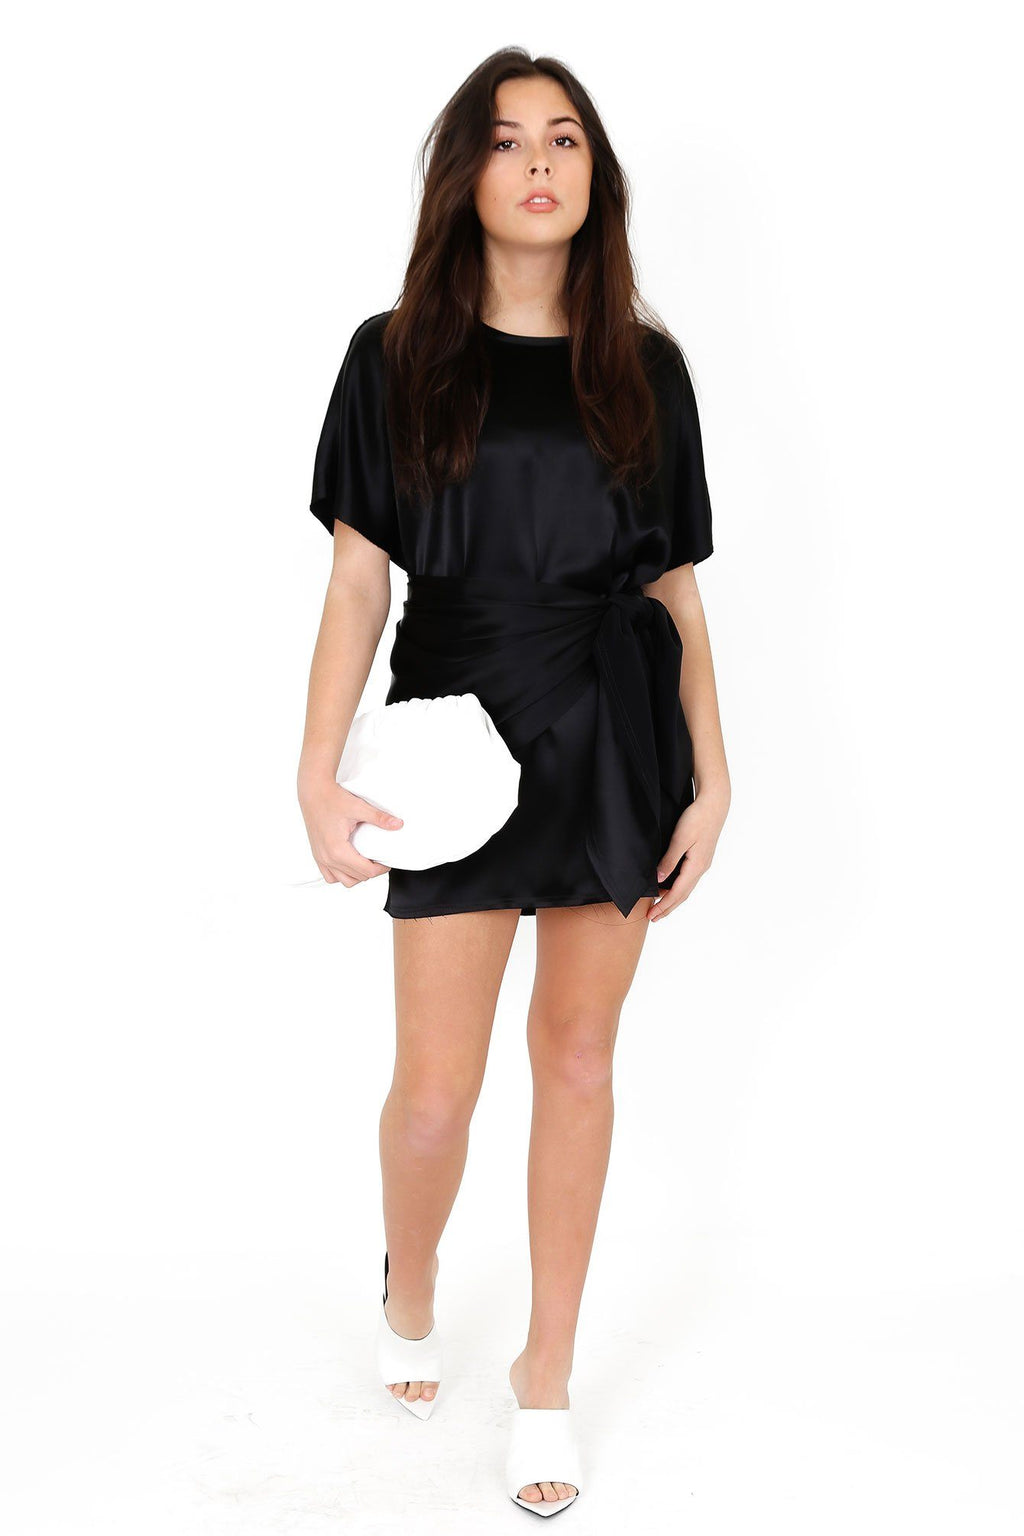 BAJA EAST | T-shirt Dress - Black